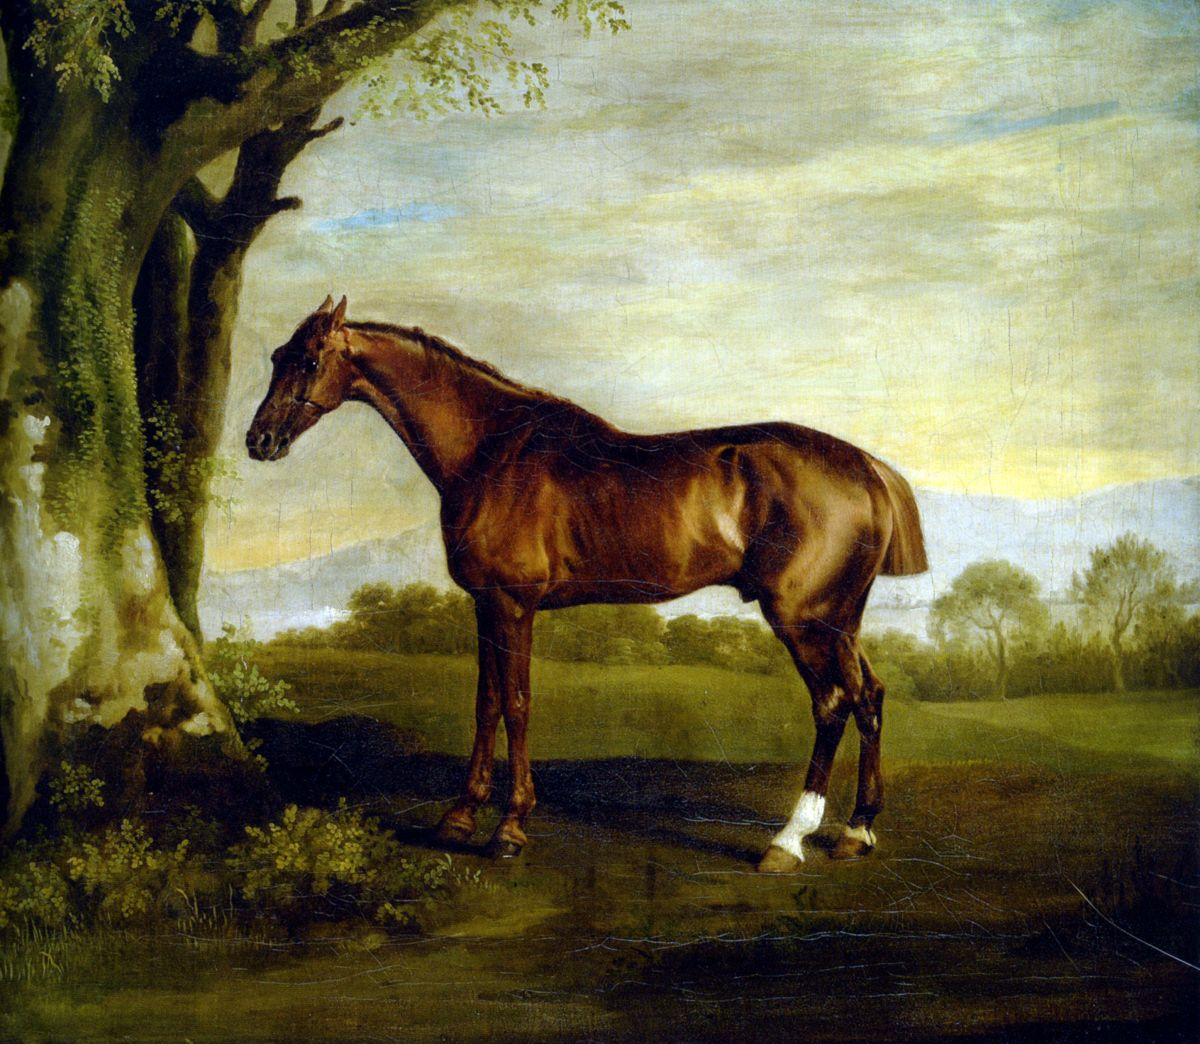 A Chestnut Racehorse by George Stubbs